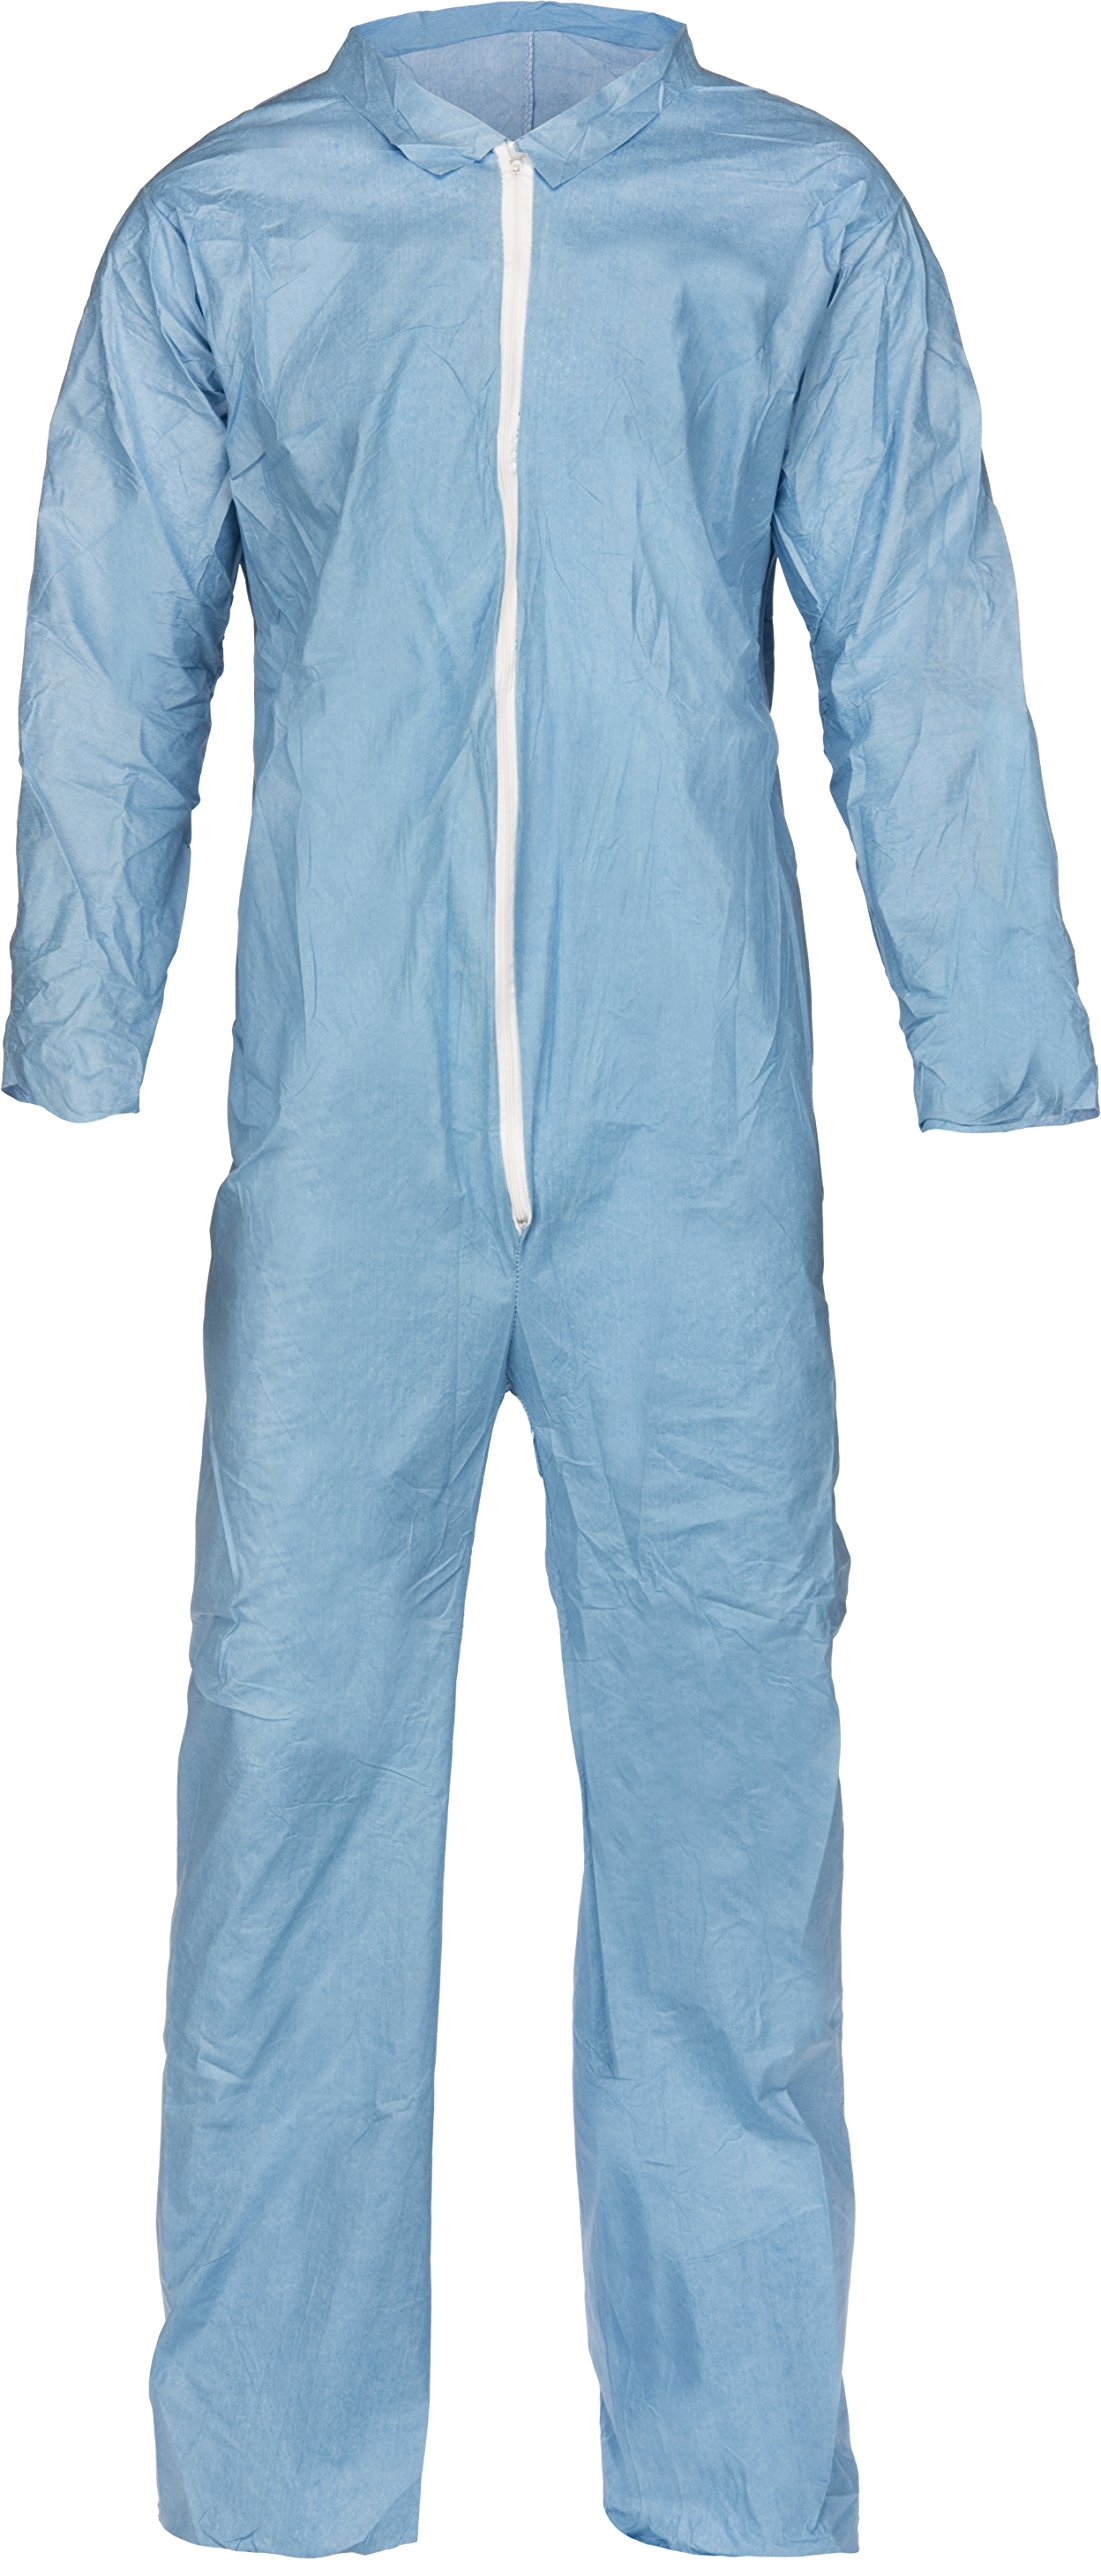 Lakeland Pyrolon Plus 2 Flame-Resistant Coverall, Disposable, Open Cuff, 3X-Large, Blue (Case of 25)